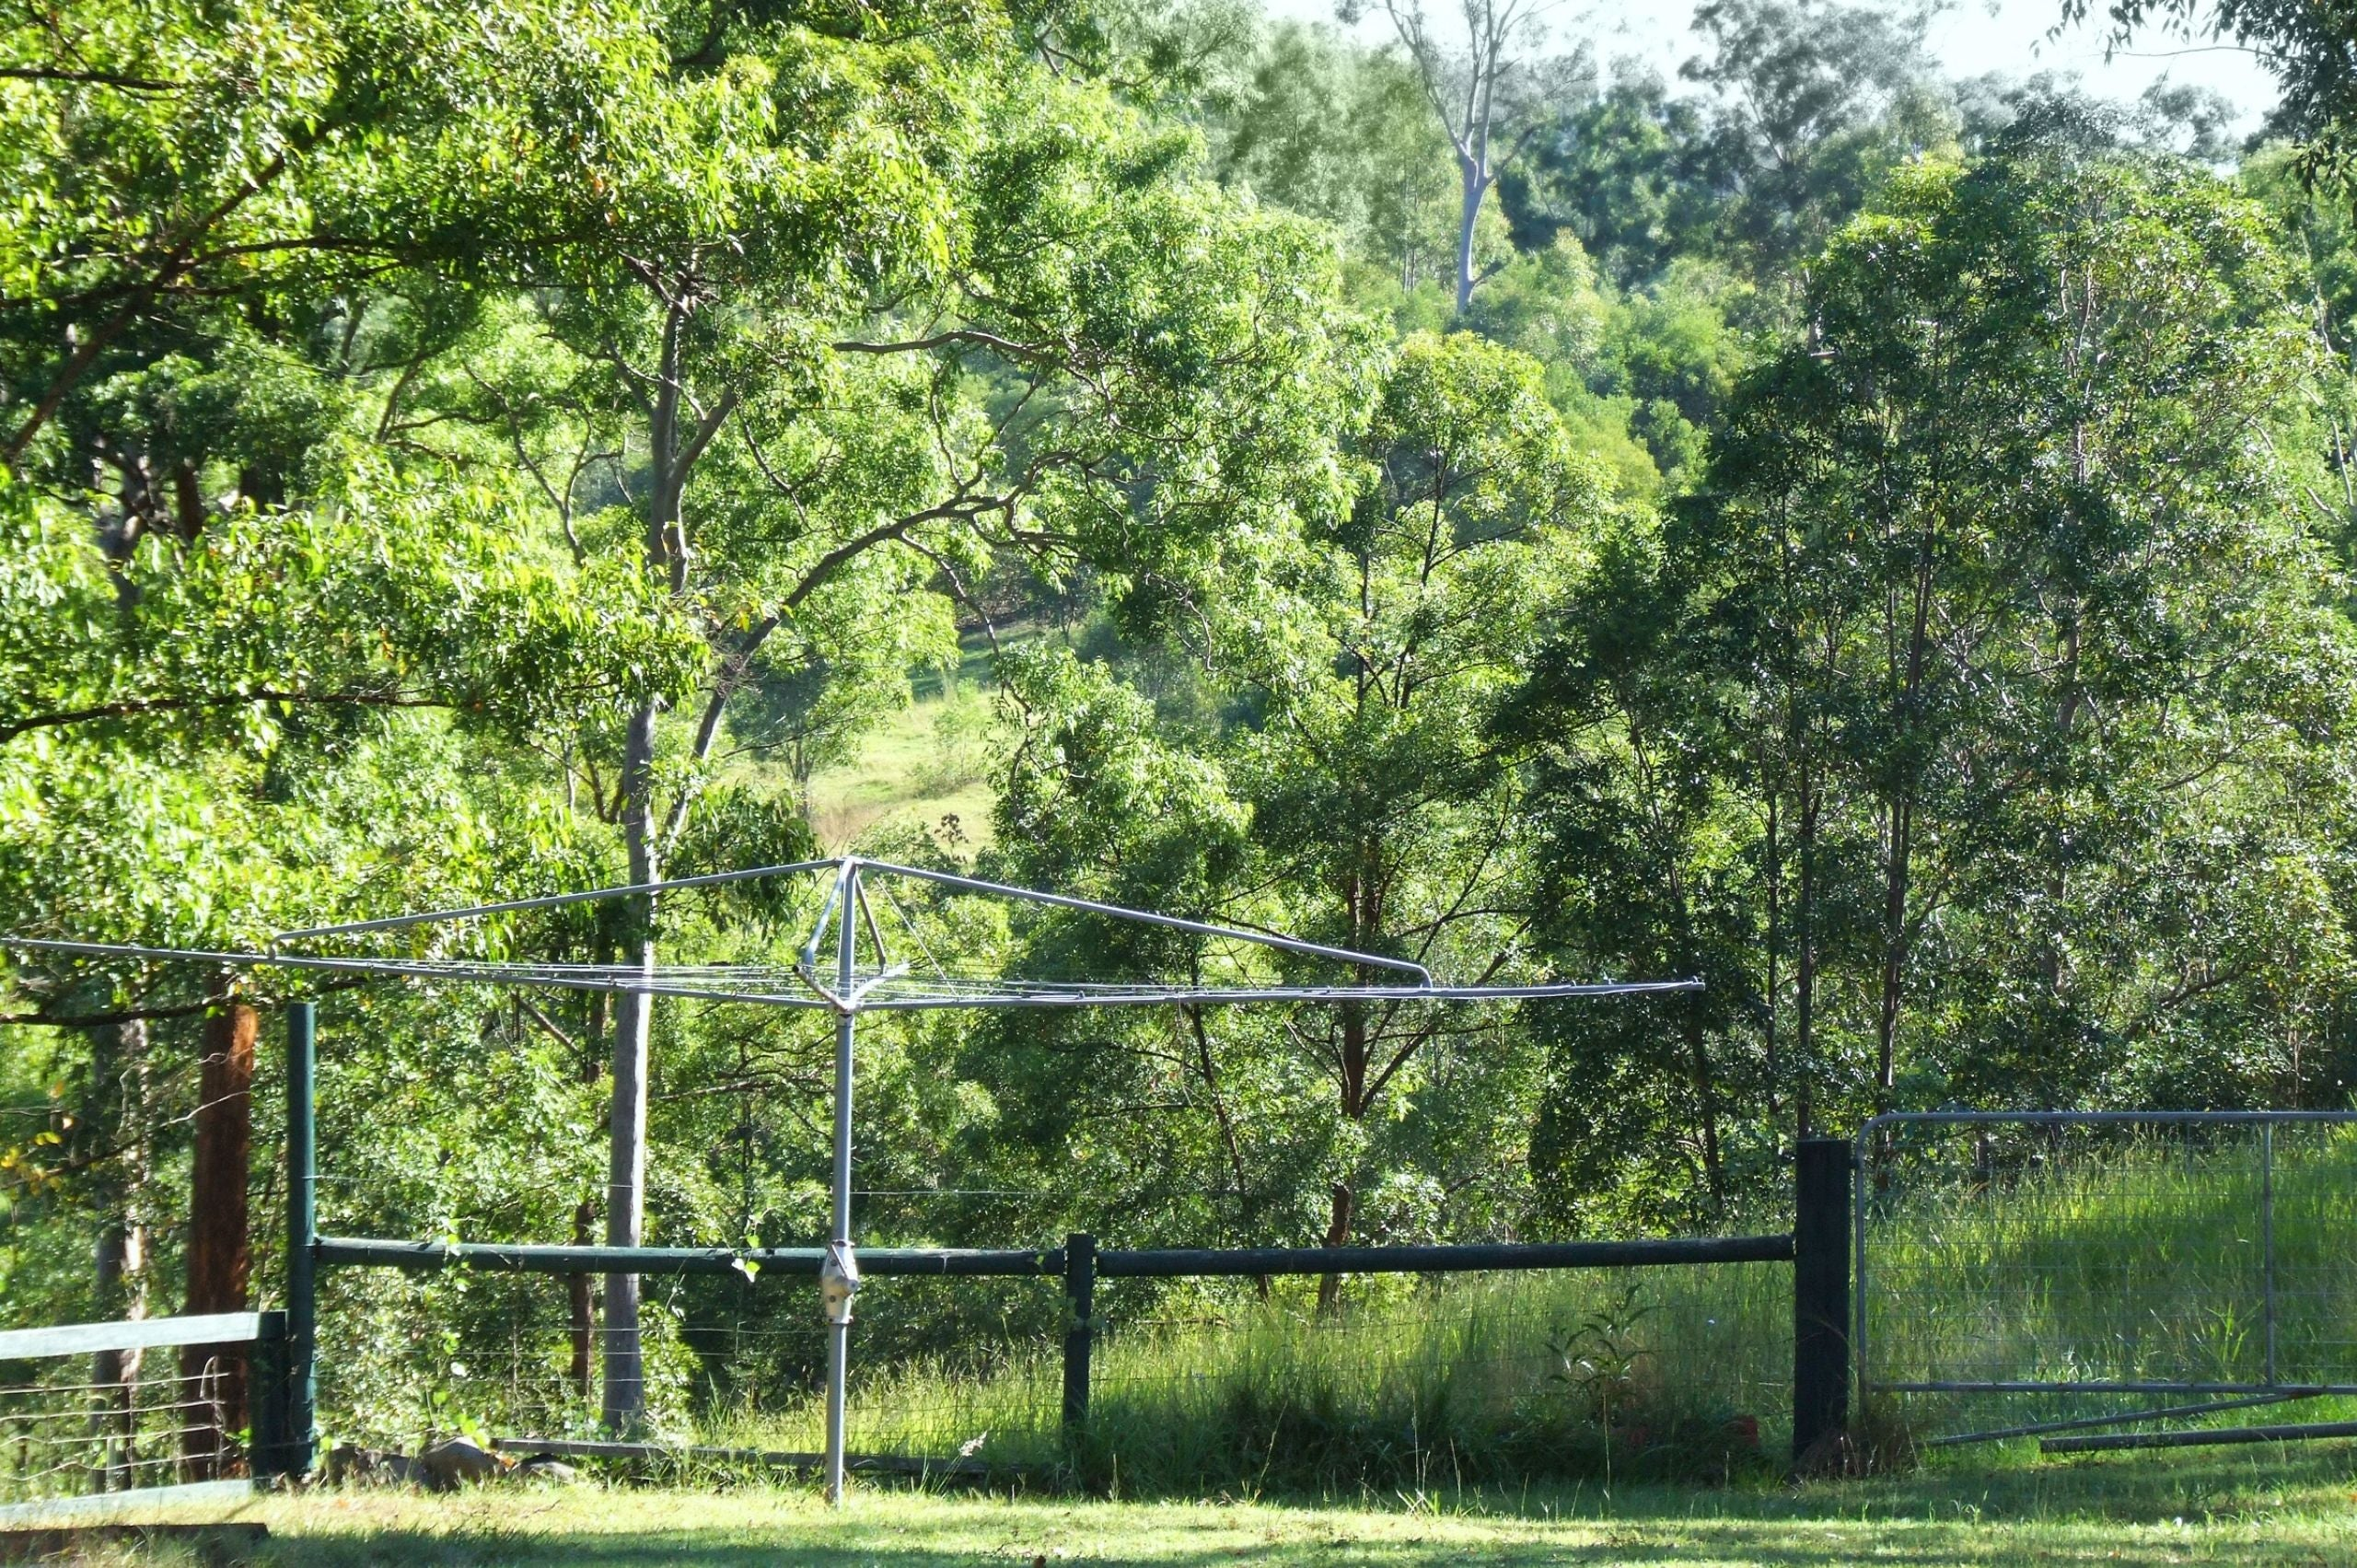 Rotary Clothes Lines - How To Choose The Right Clothesline? by Topline Clotheslines